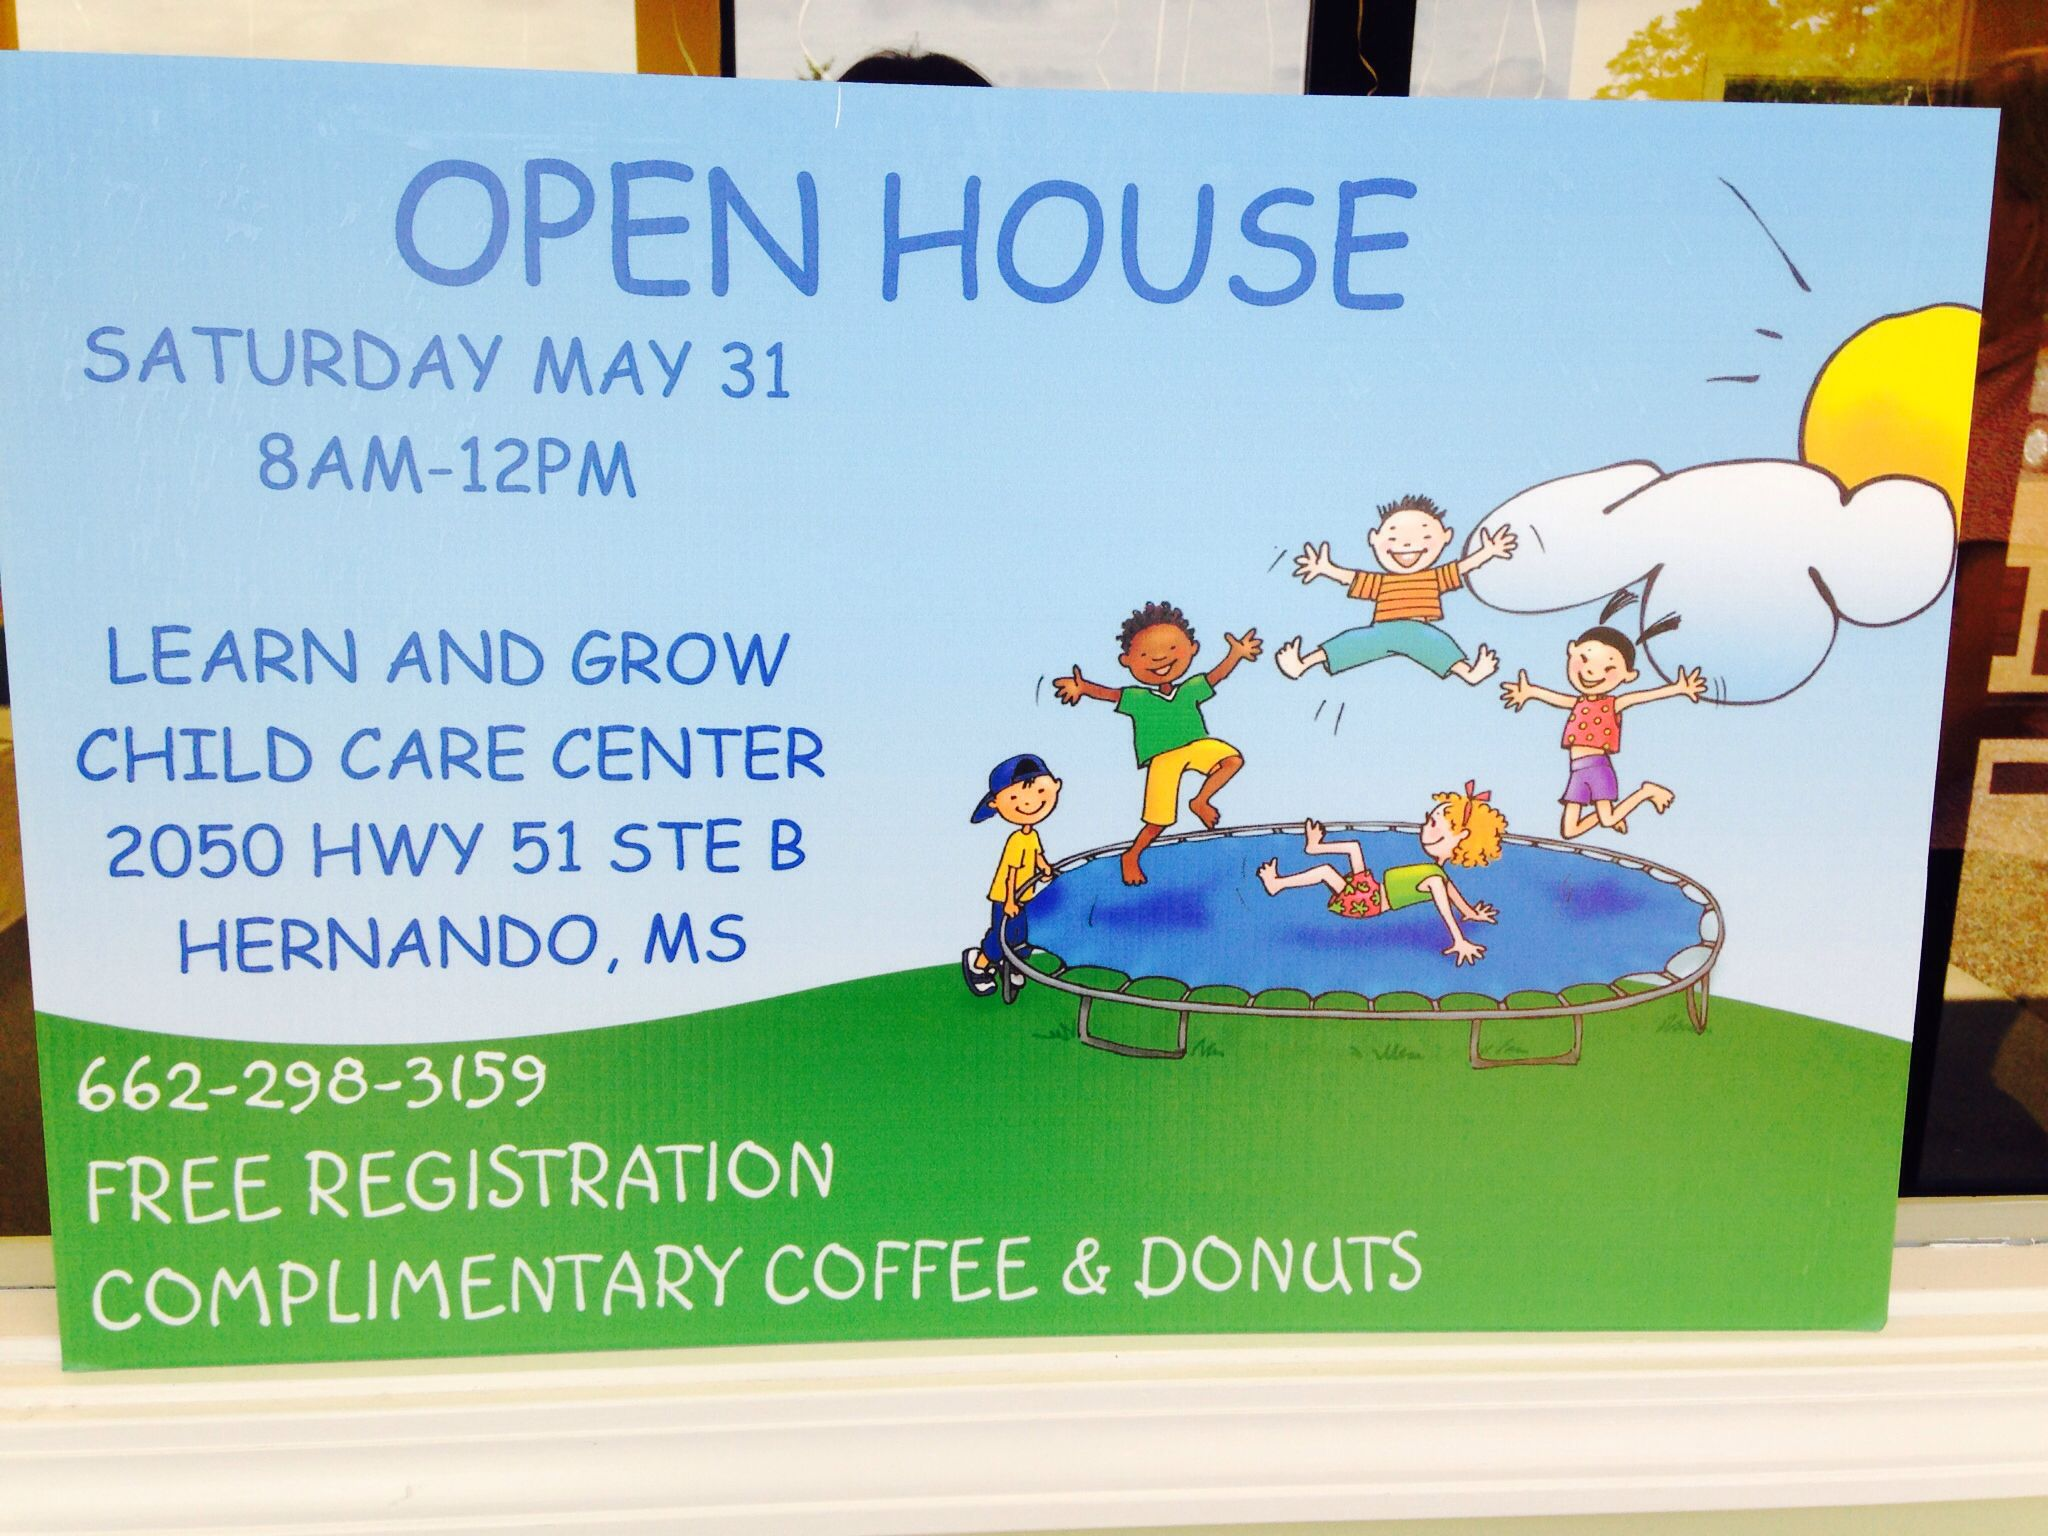 This is my sister's daycare. We need more children! Please join! :)